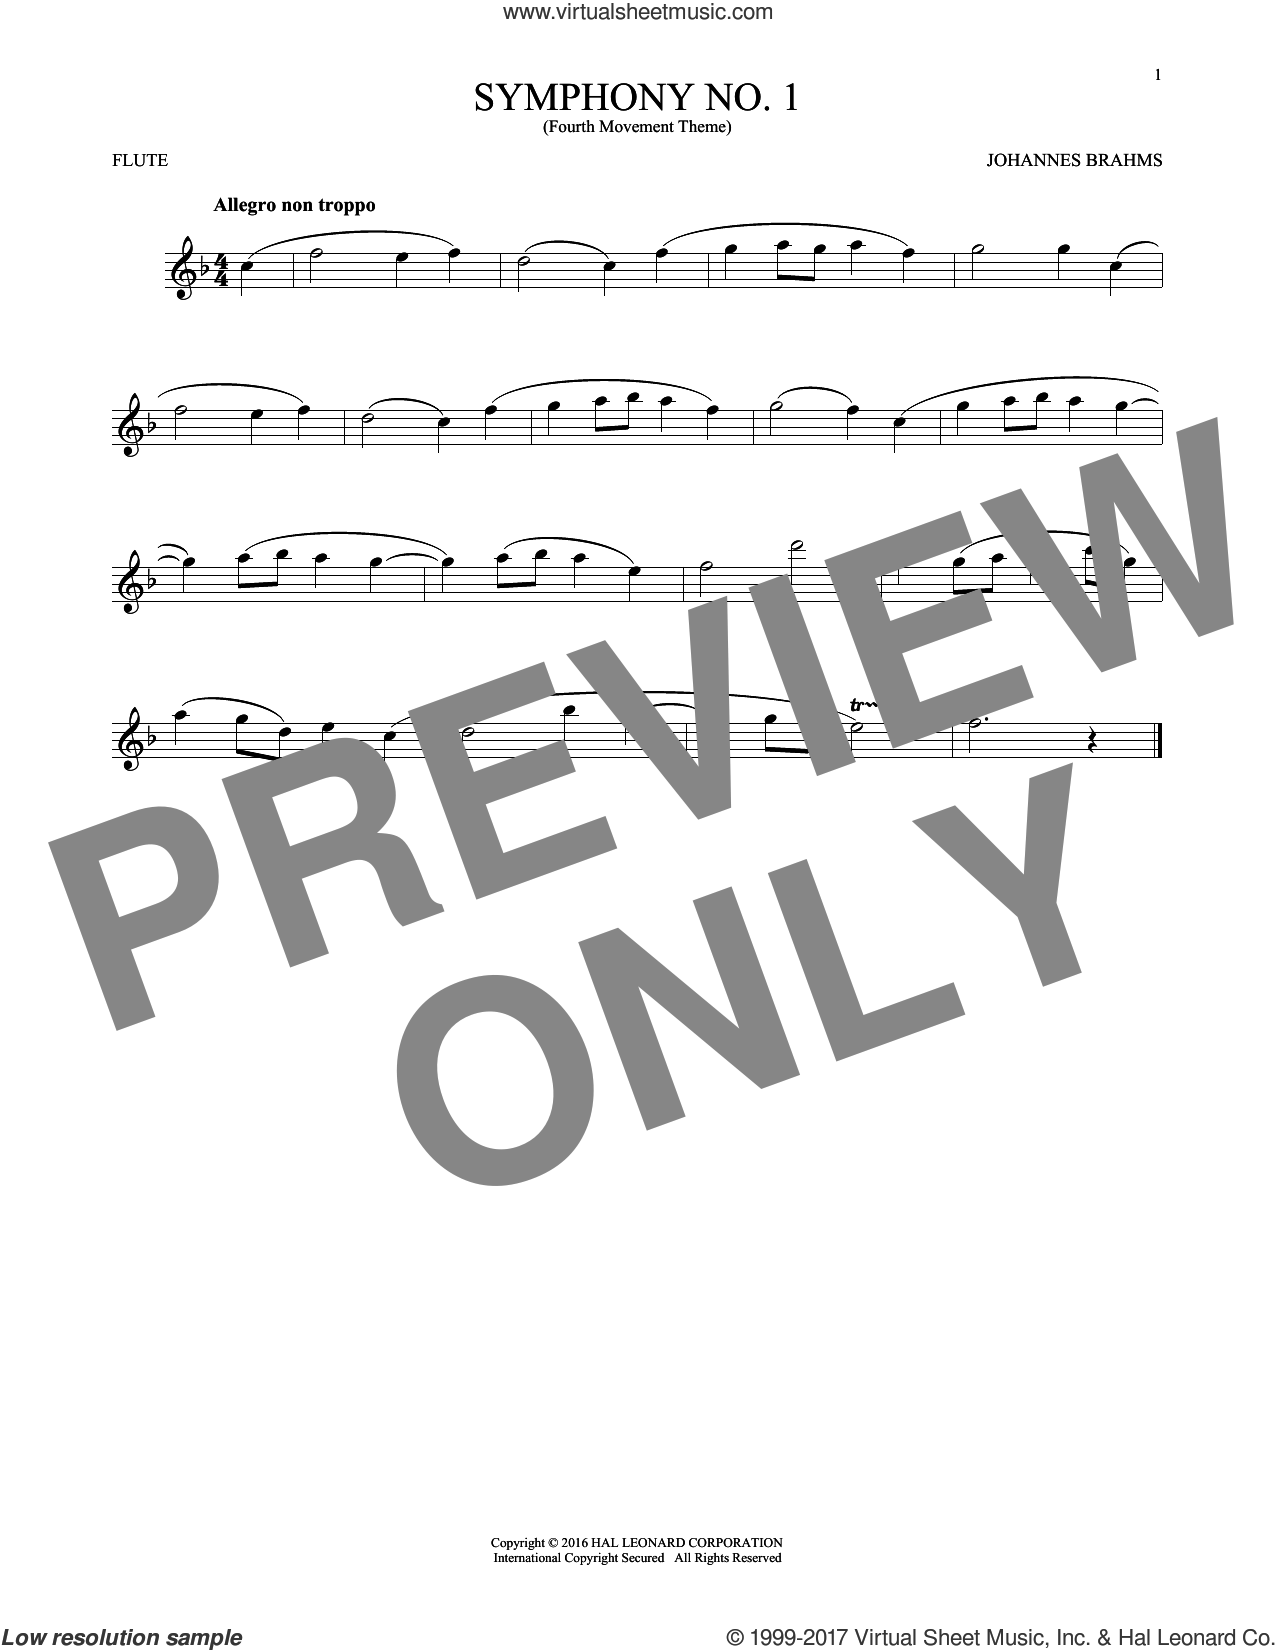 Symphony No. 1 In C Minor, Fourth Movement Excerpt sheet music for flute solo by Johannes Brahms, classical score, intermediate skill level